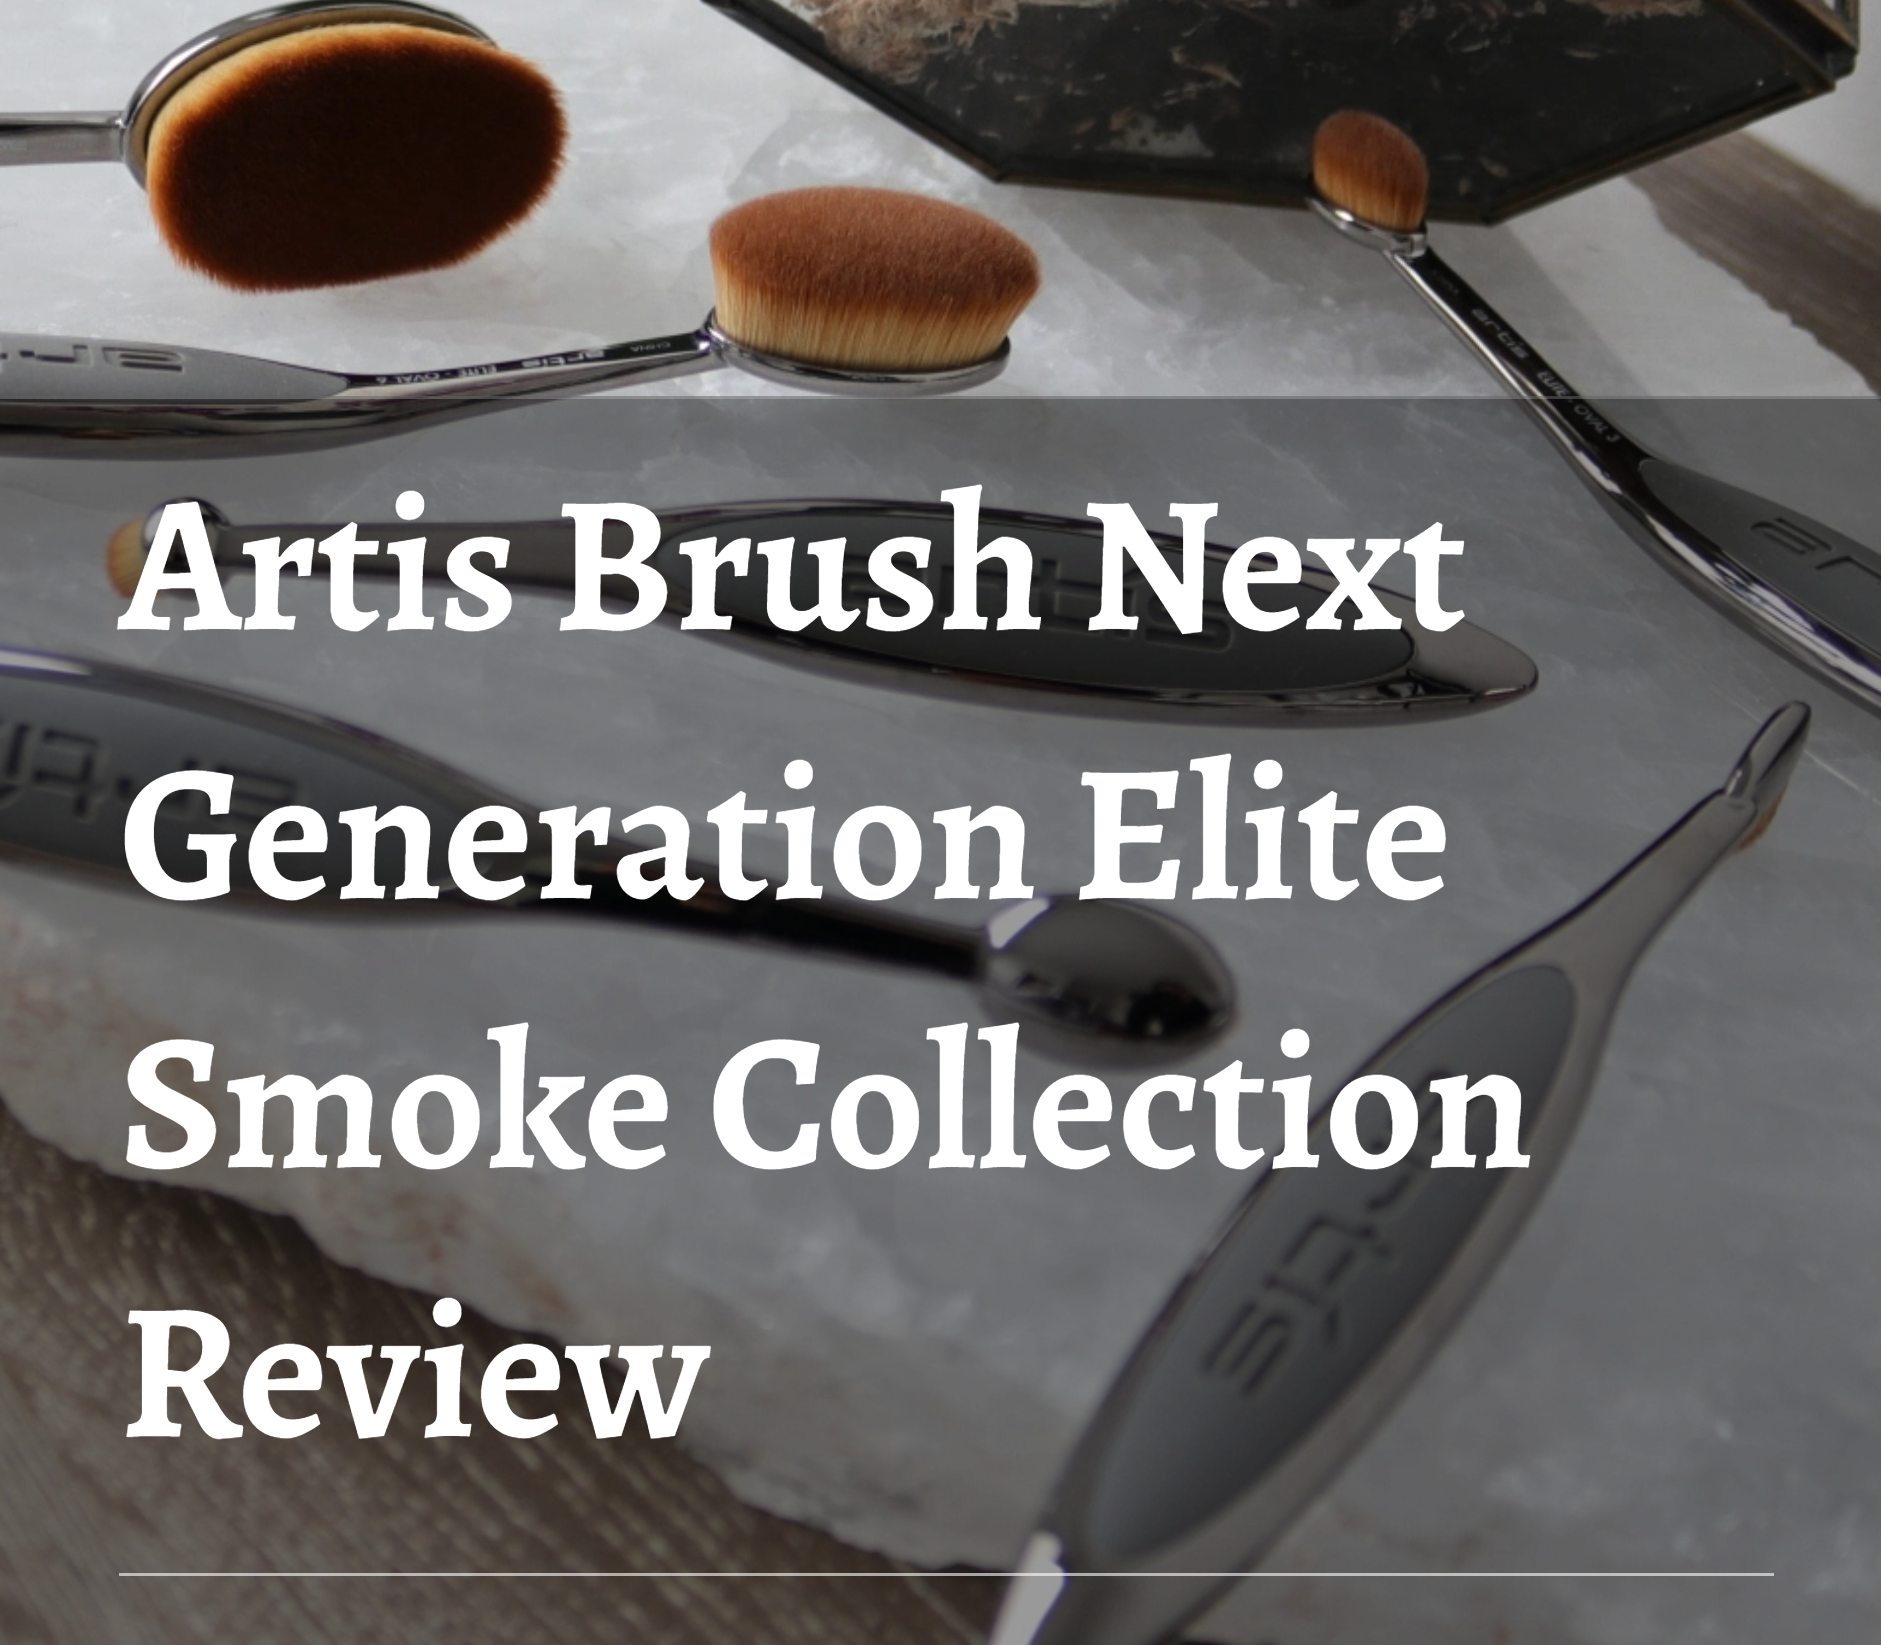 Artis Brush Next Generation Oval Brush Review. Cruelty